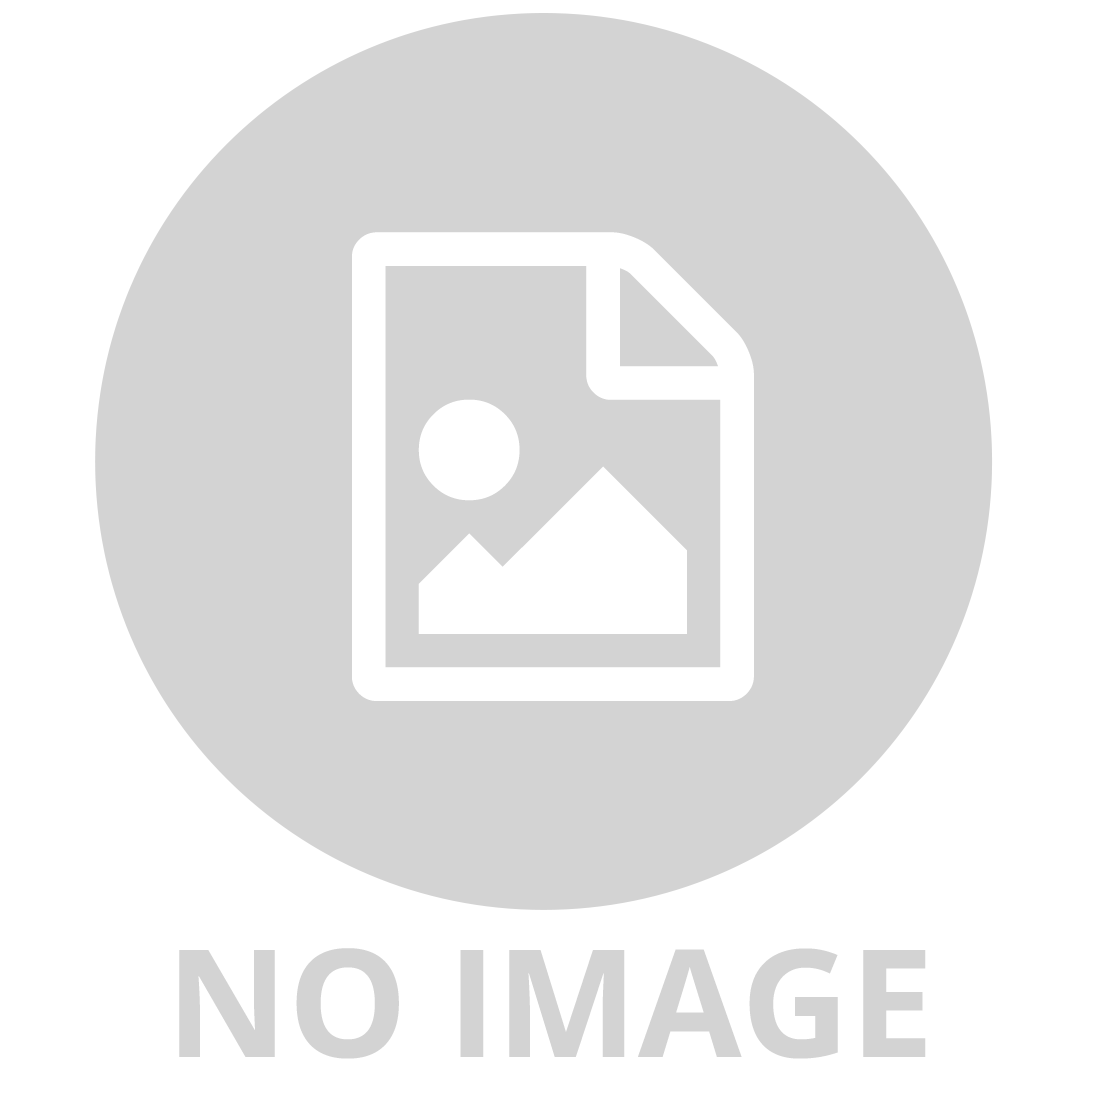 EXT-002 White LED Extrusion 1